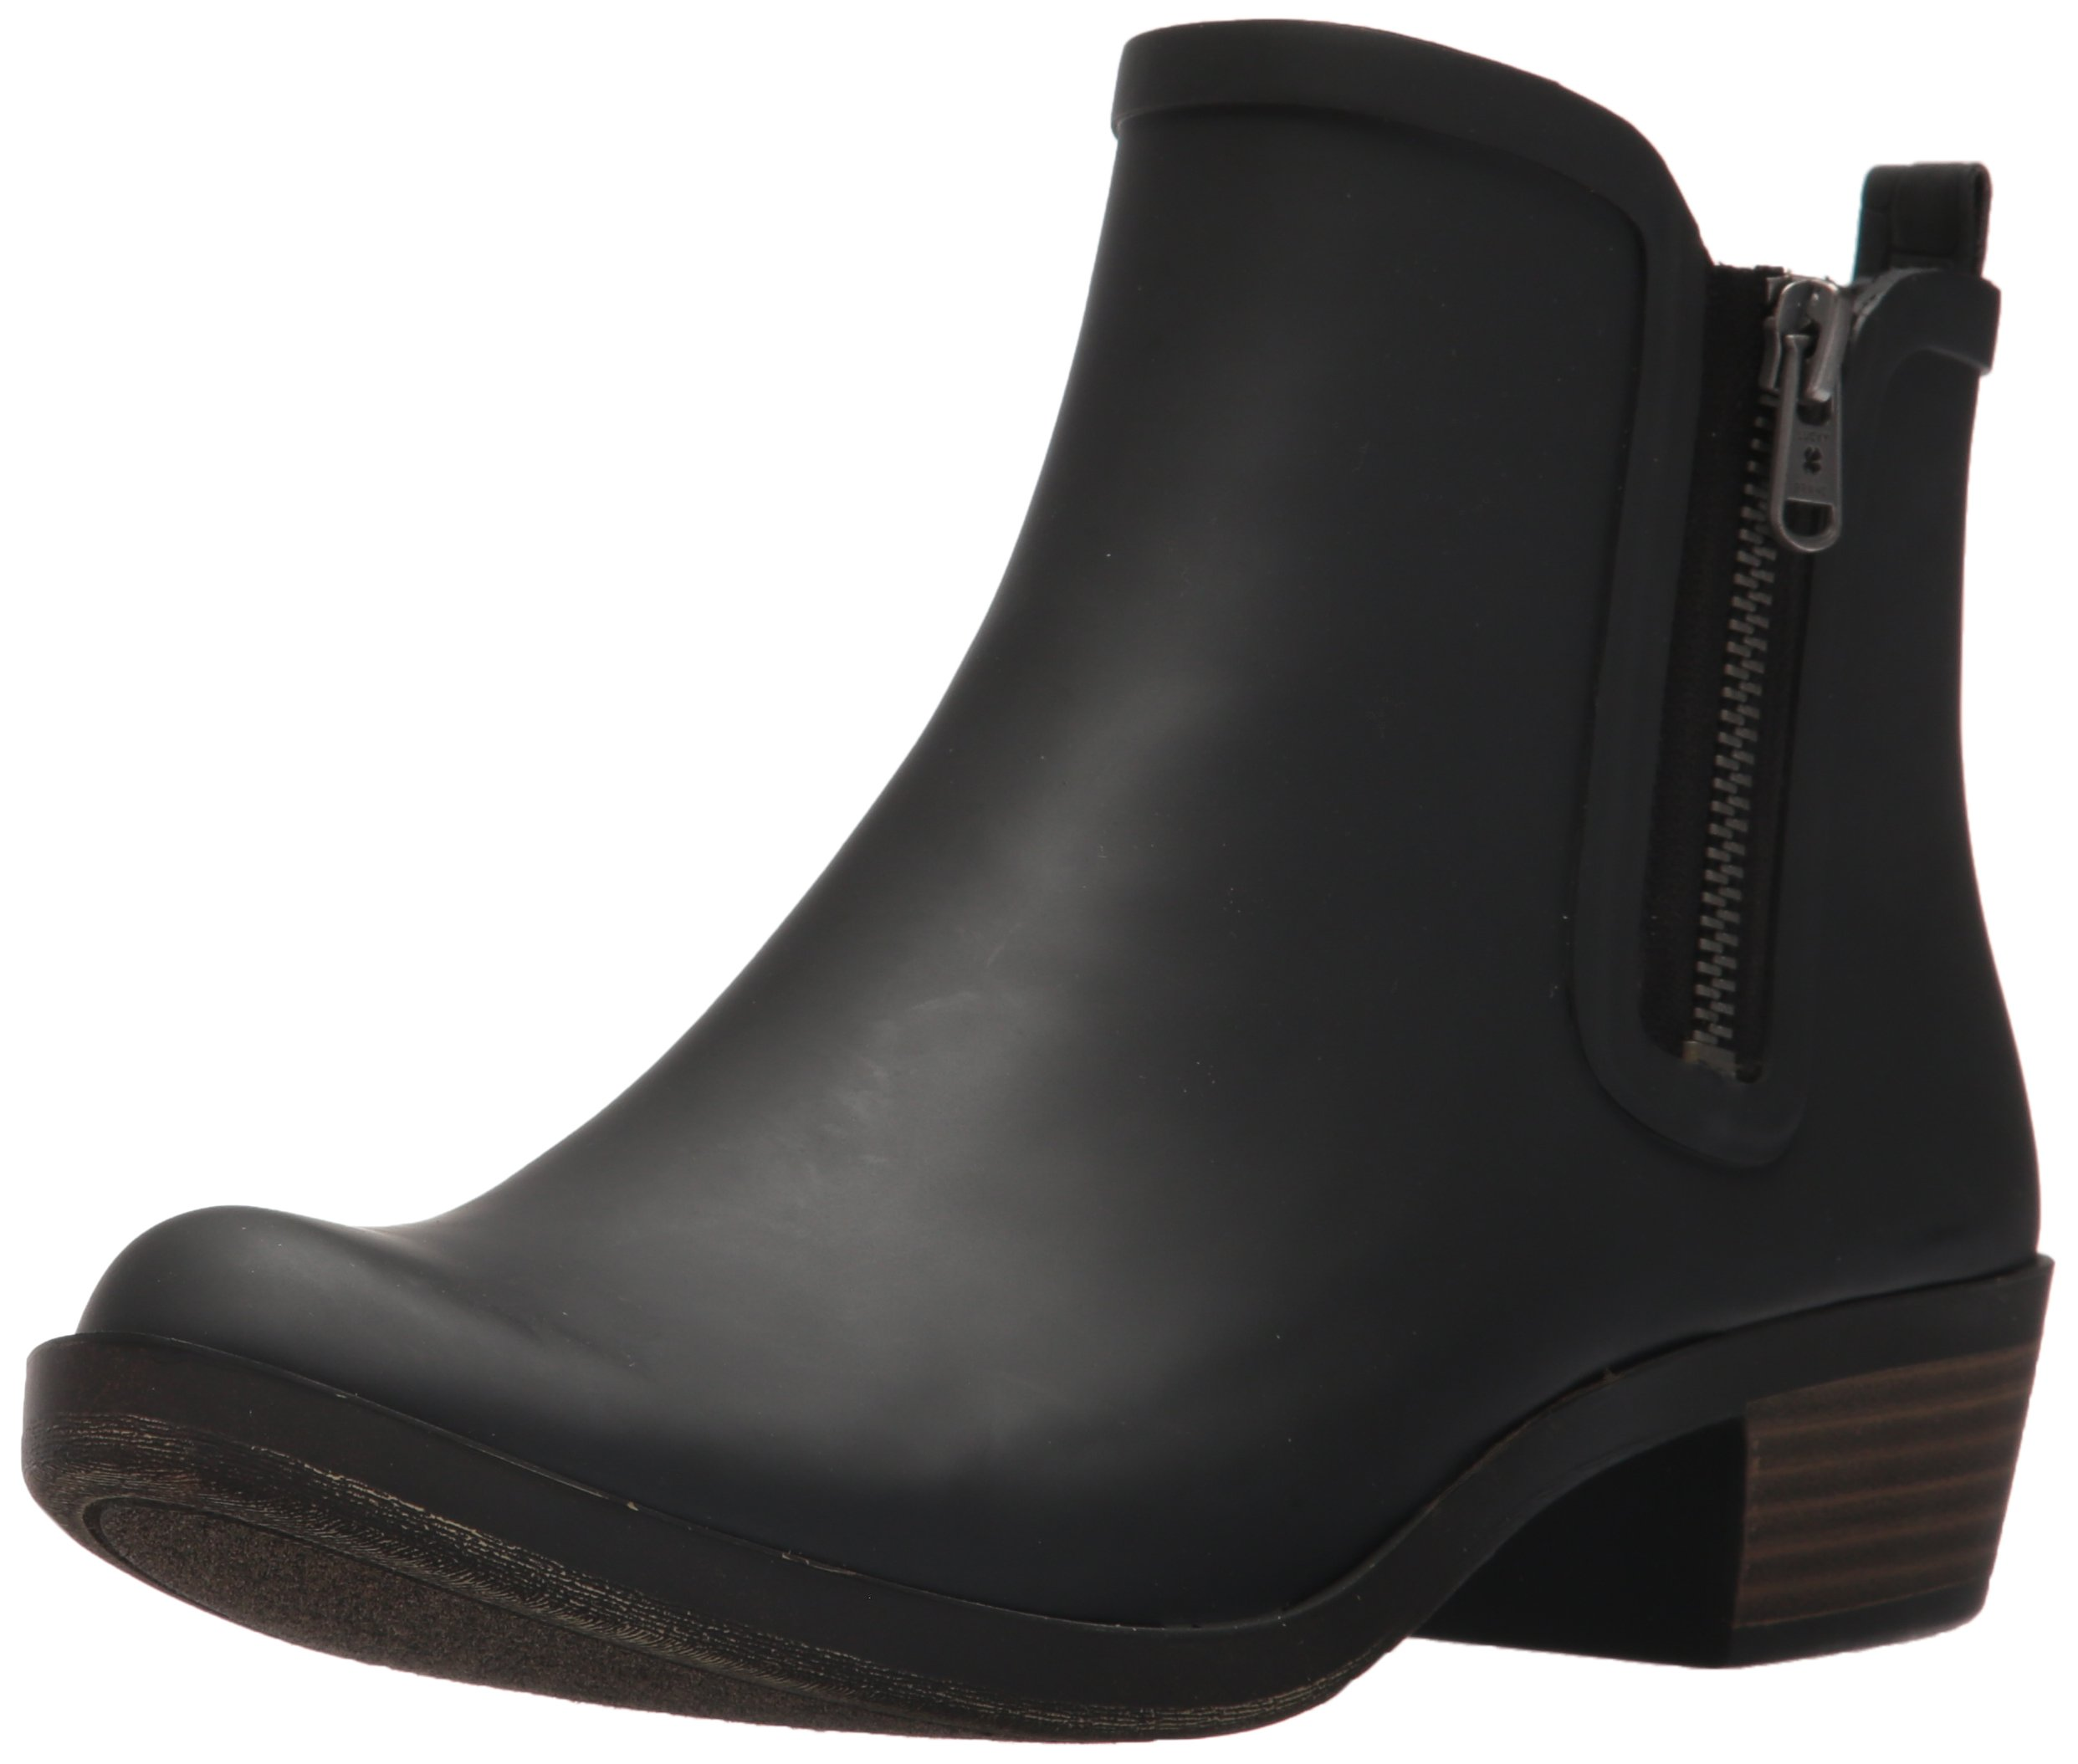 Lucky Brand Women's Baselrain Rain Boot, Black Crocodile, 10 Medium US by Lucky Brand (Image #1)